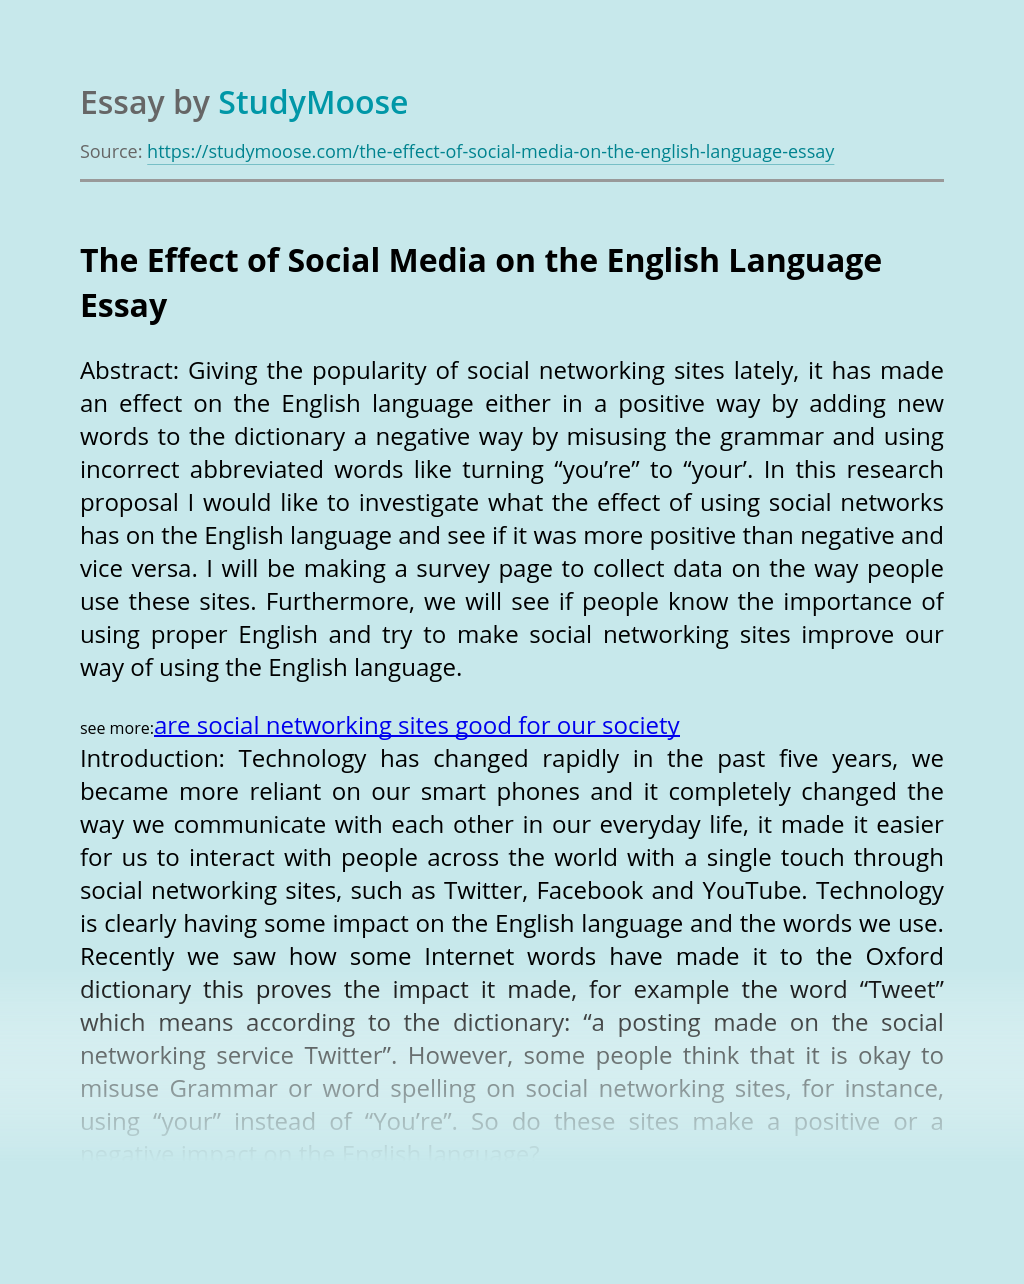 The Effect of Social Media on the English Language